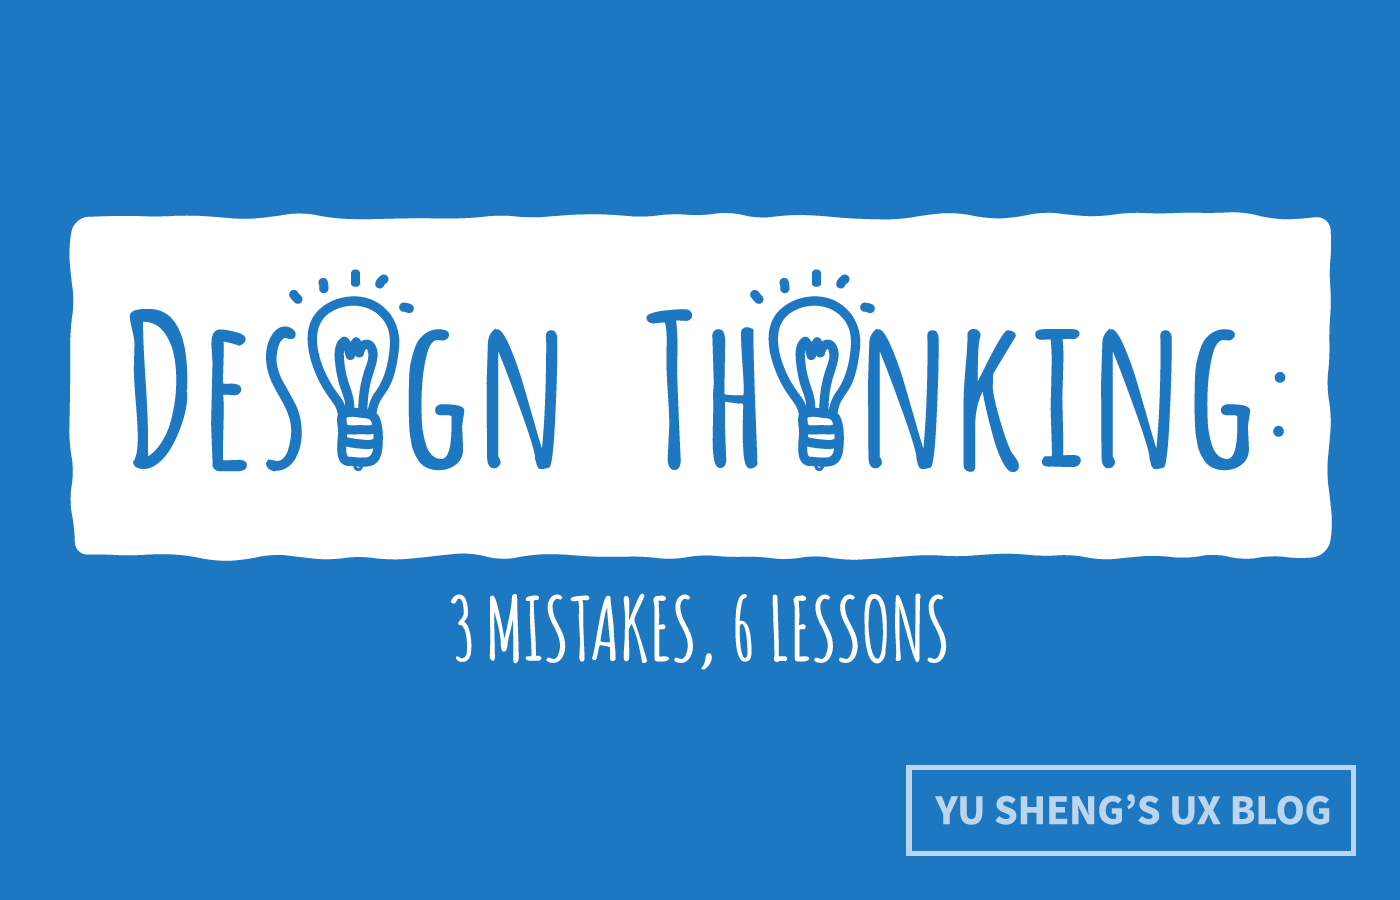 3 Mistakes, 6 Lessons from Conducting a Design Thinking Session